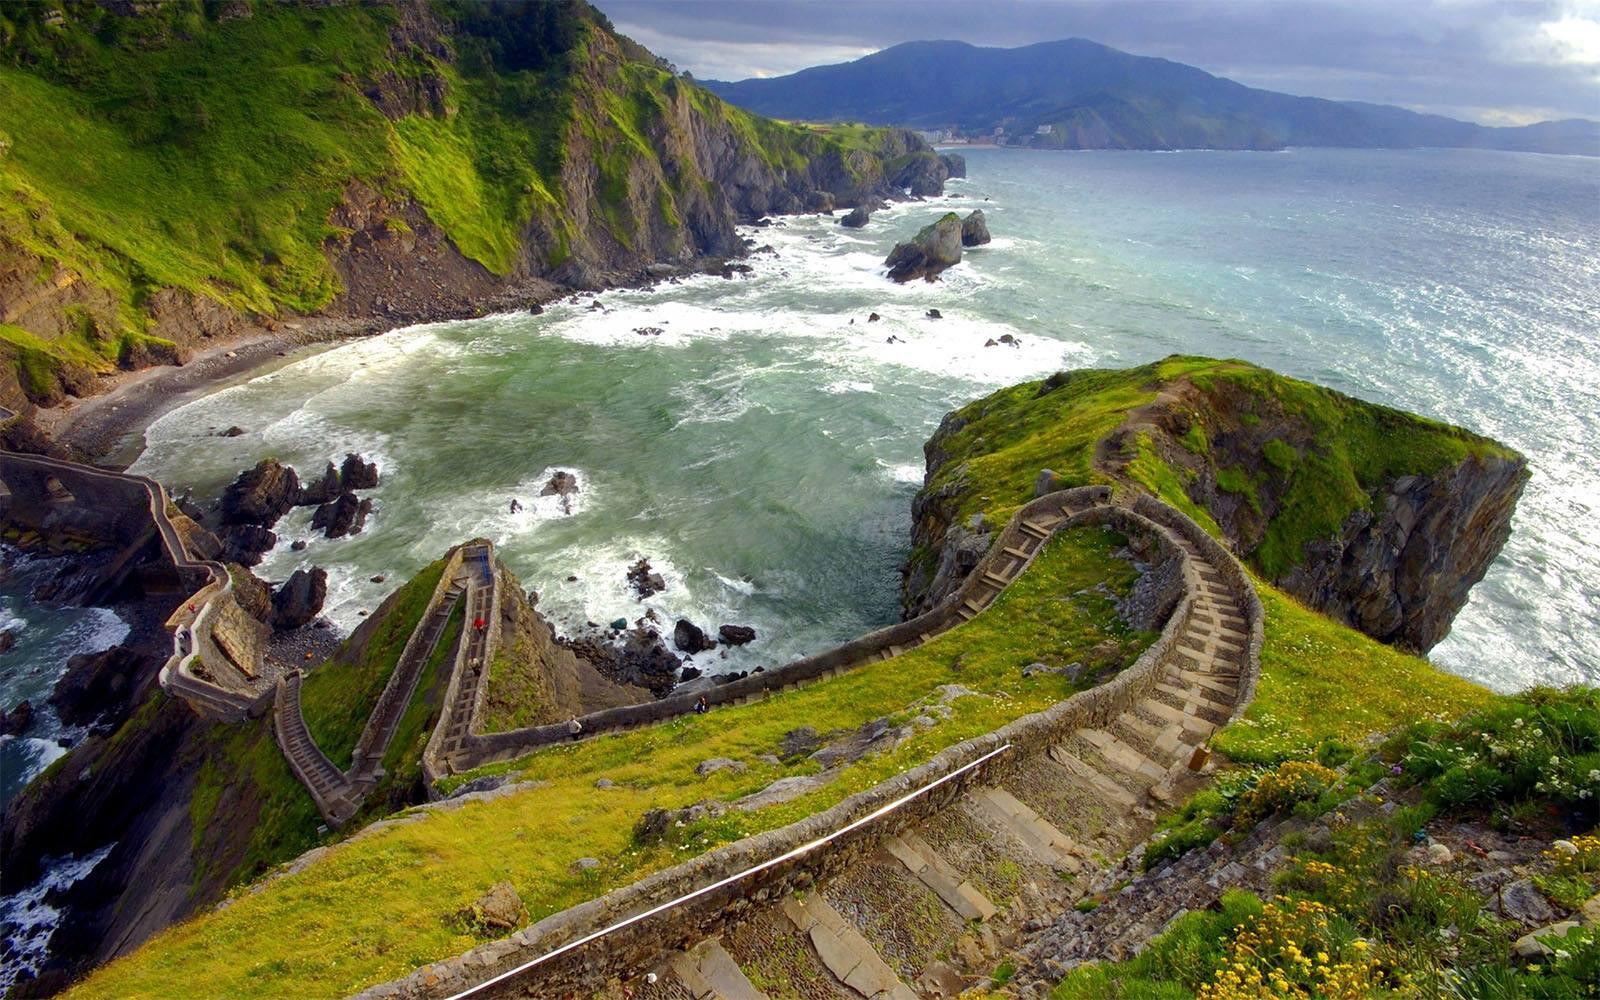 This beautiful staircase is located on the island Gaztelugatxe in Spain http://t.co/cKsAjElEAg